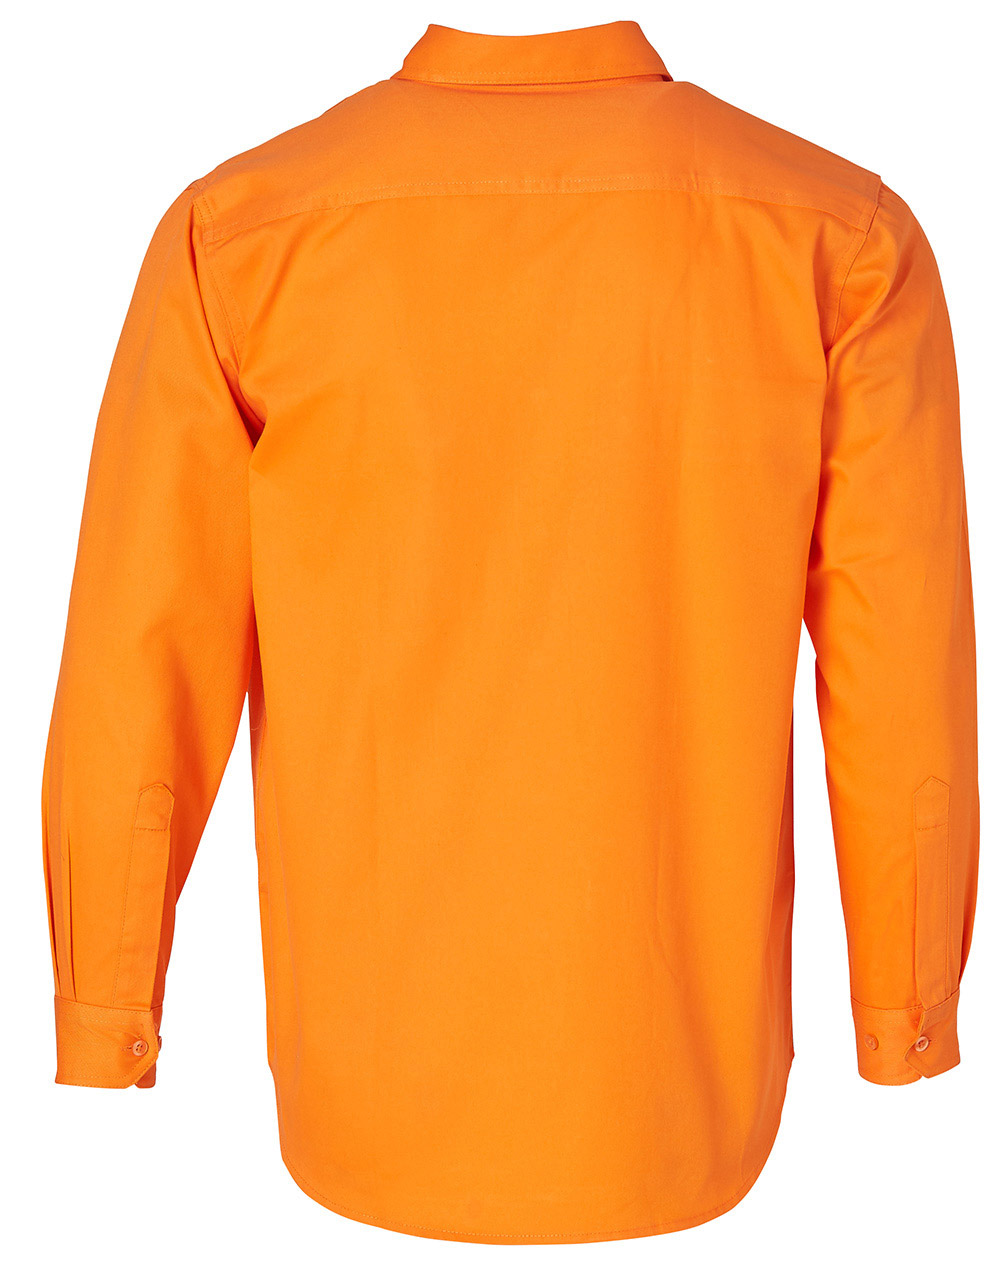 https://s3-ap-southeast-1.amazonaws.com/ws-imgs/WORKWEAR/SW51_Orange_Back.jpg